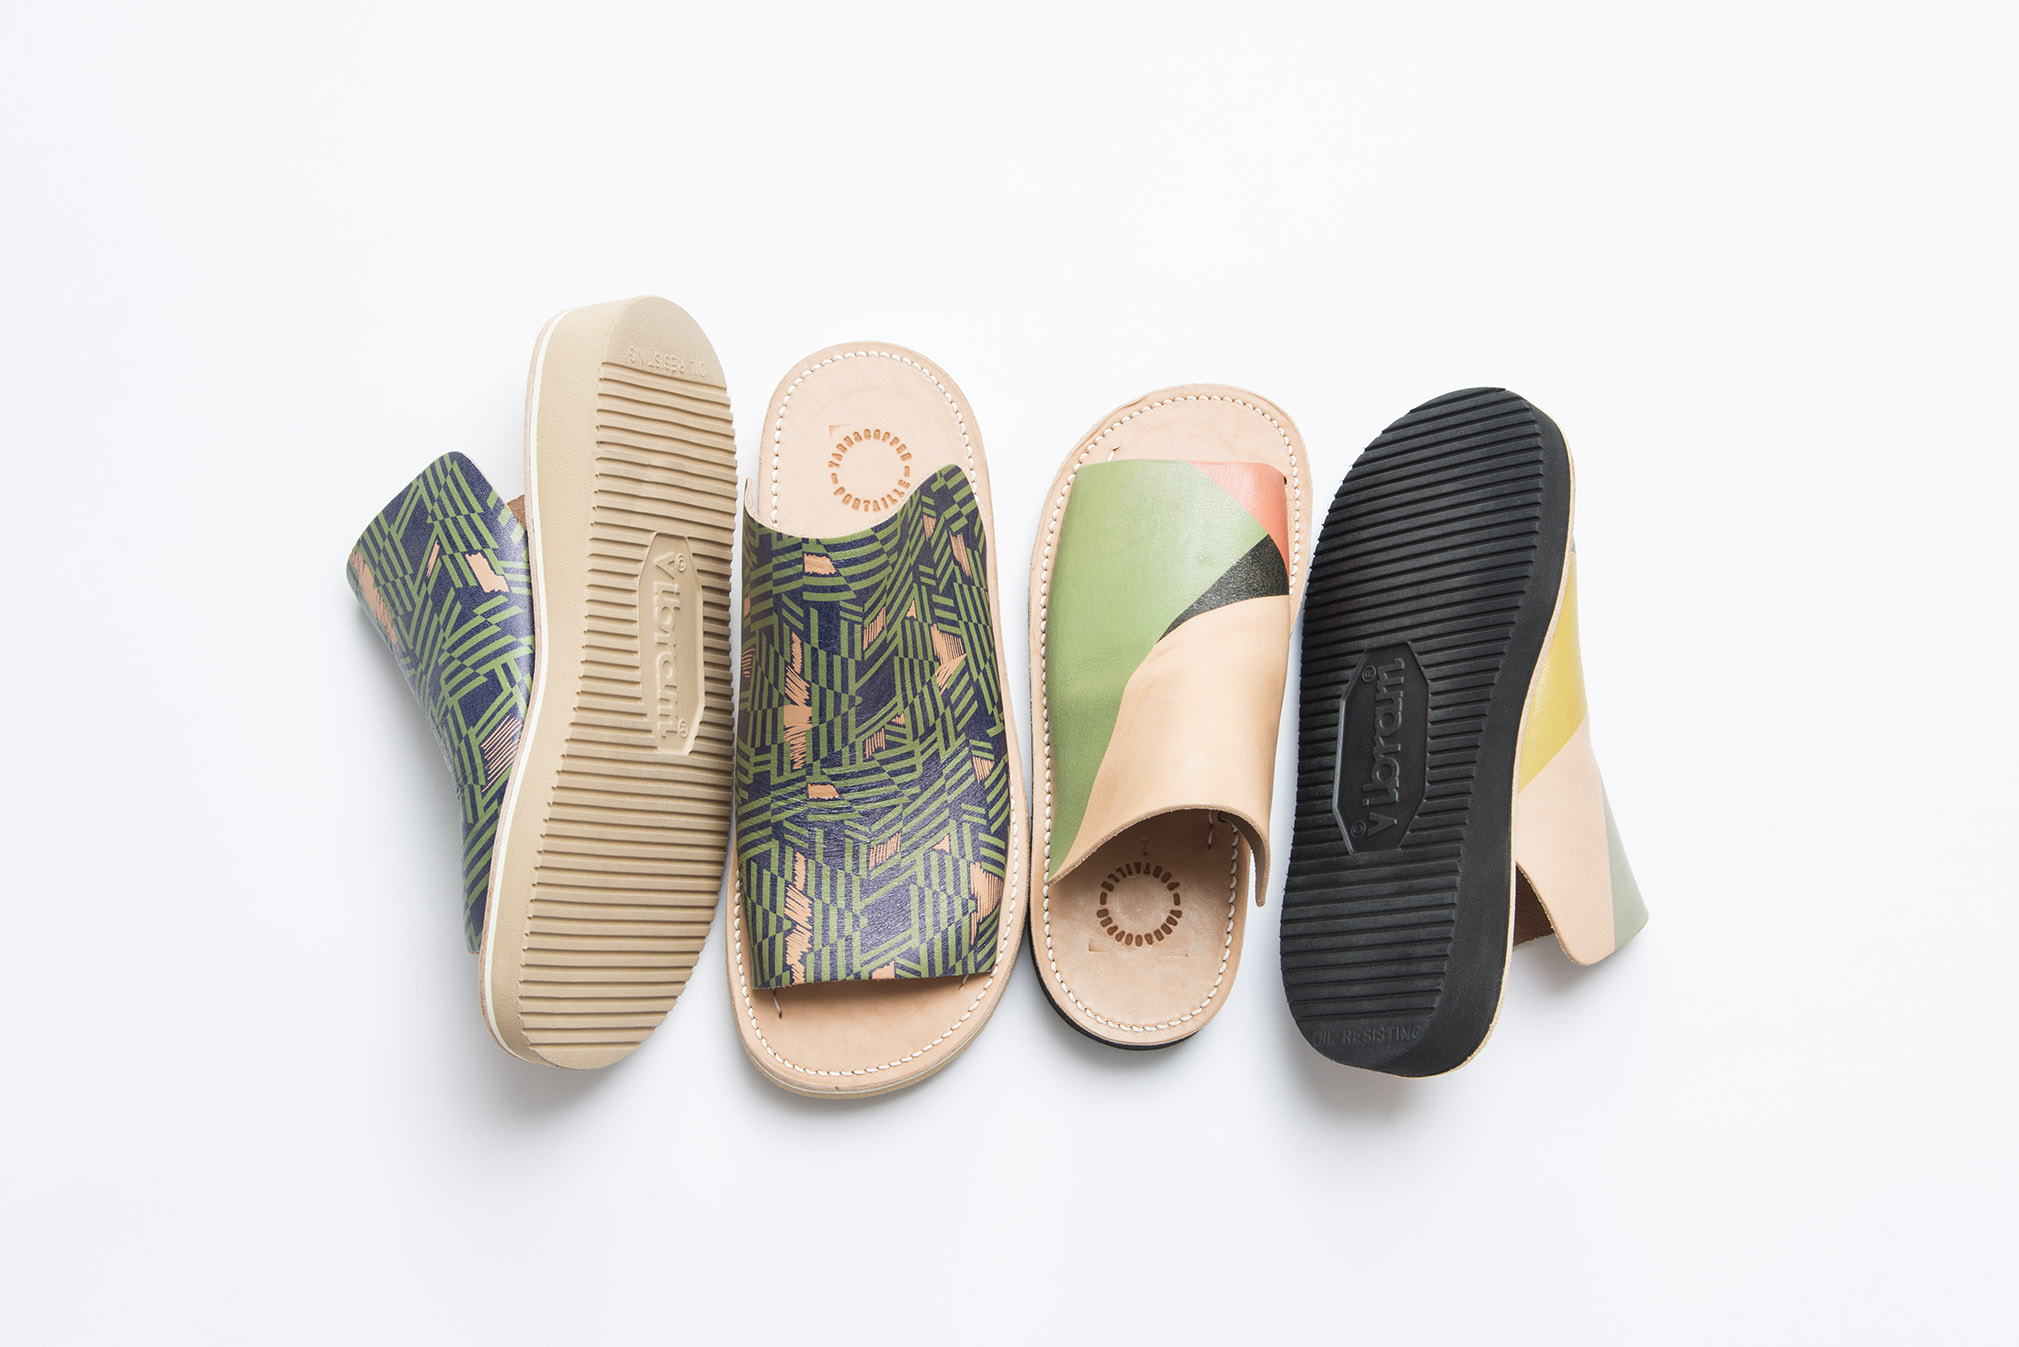 『YARN&COPPER × Portaille Sandals Collection』